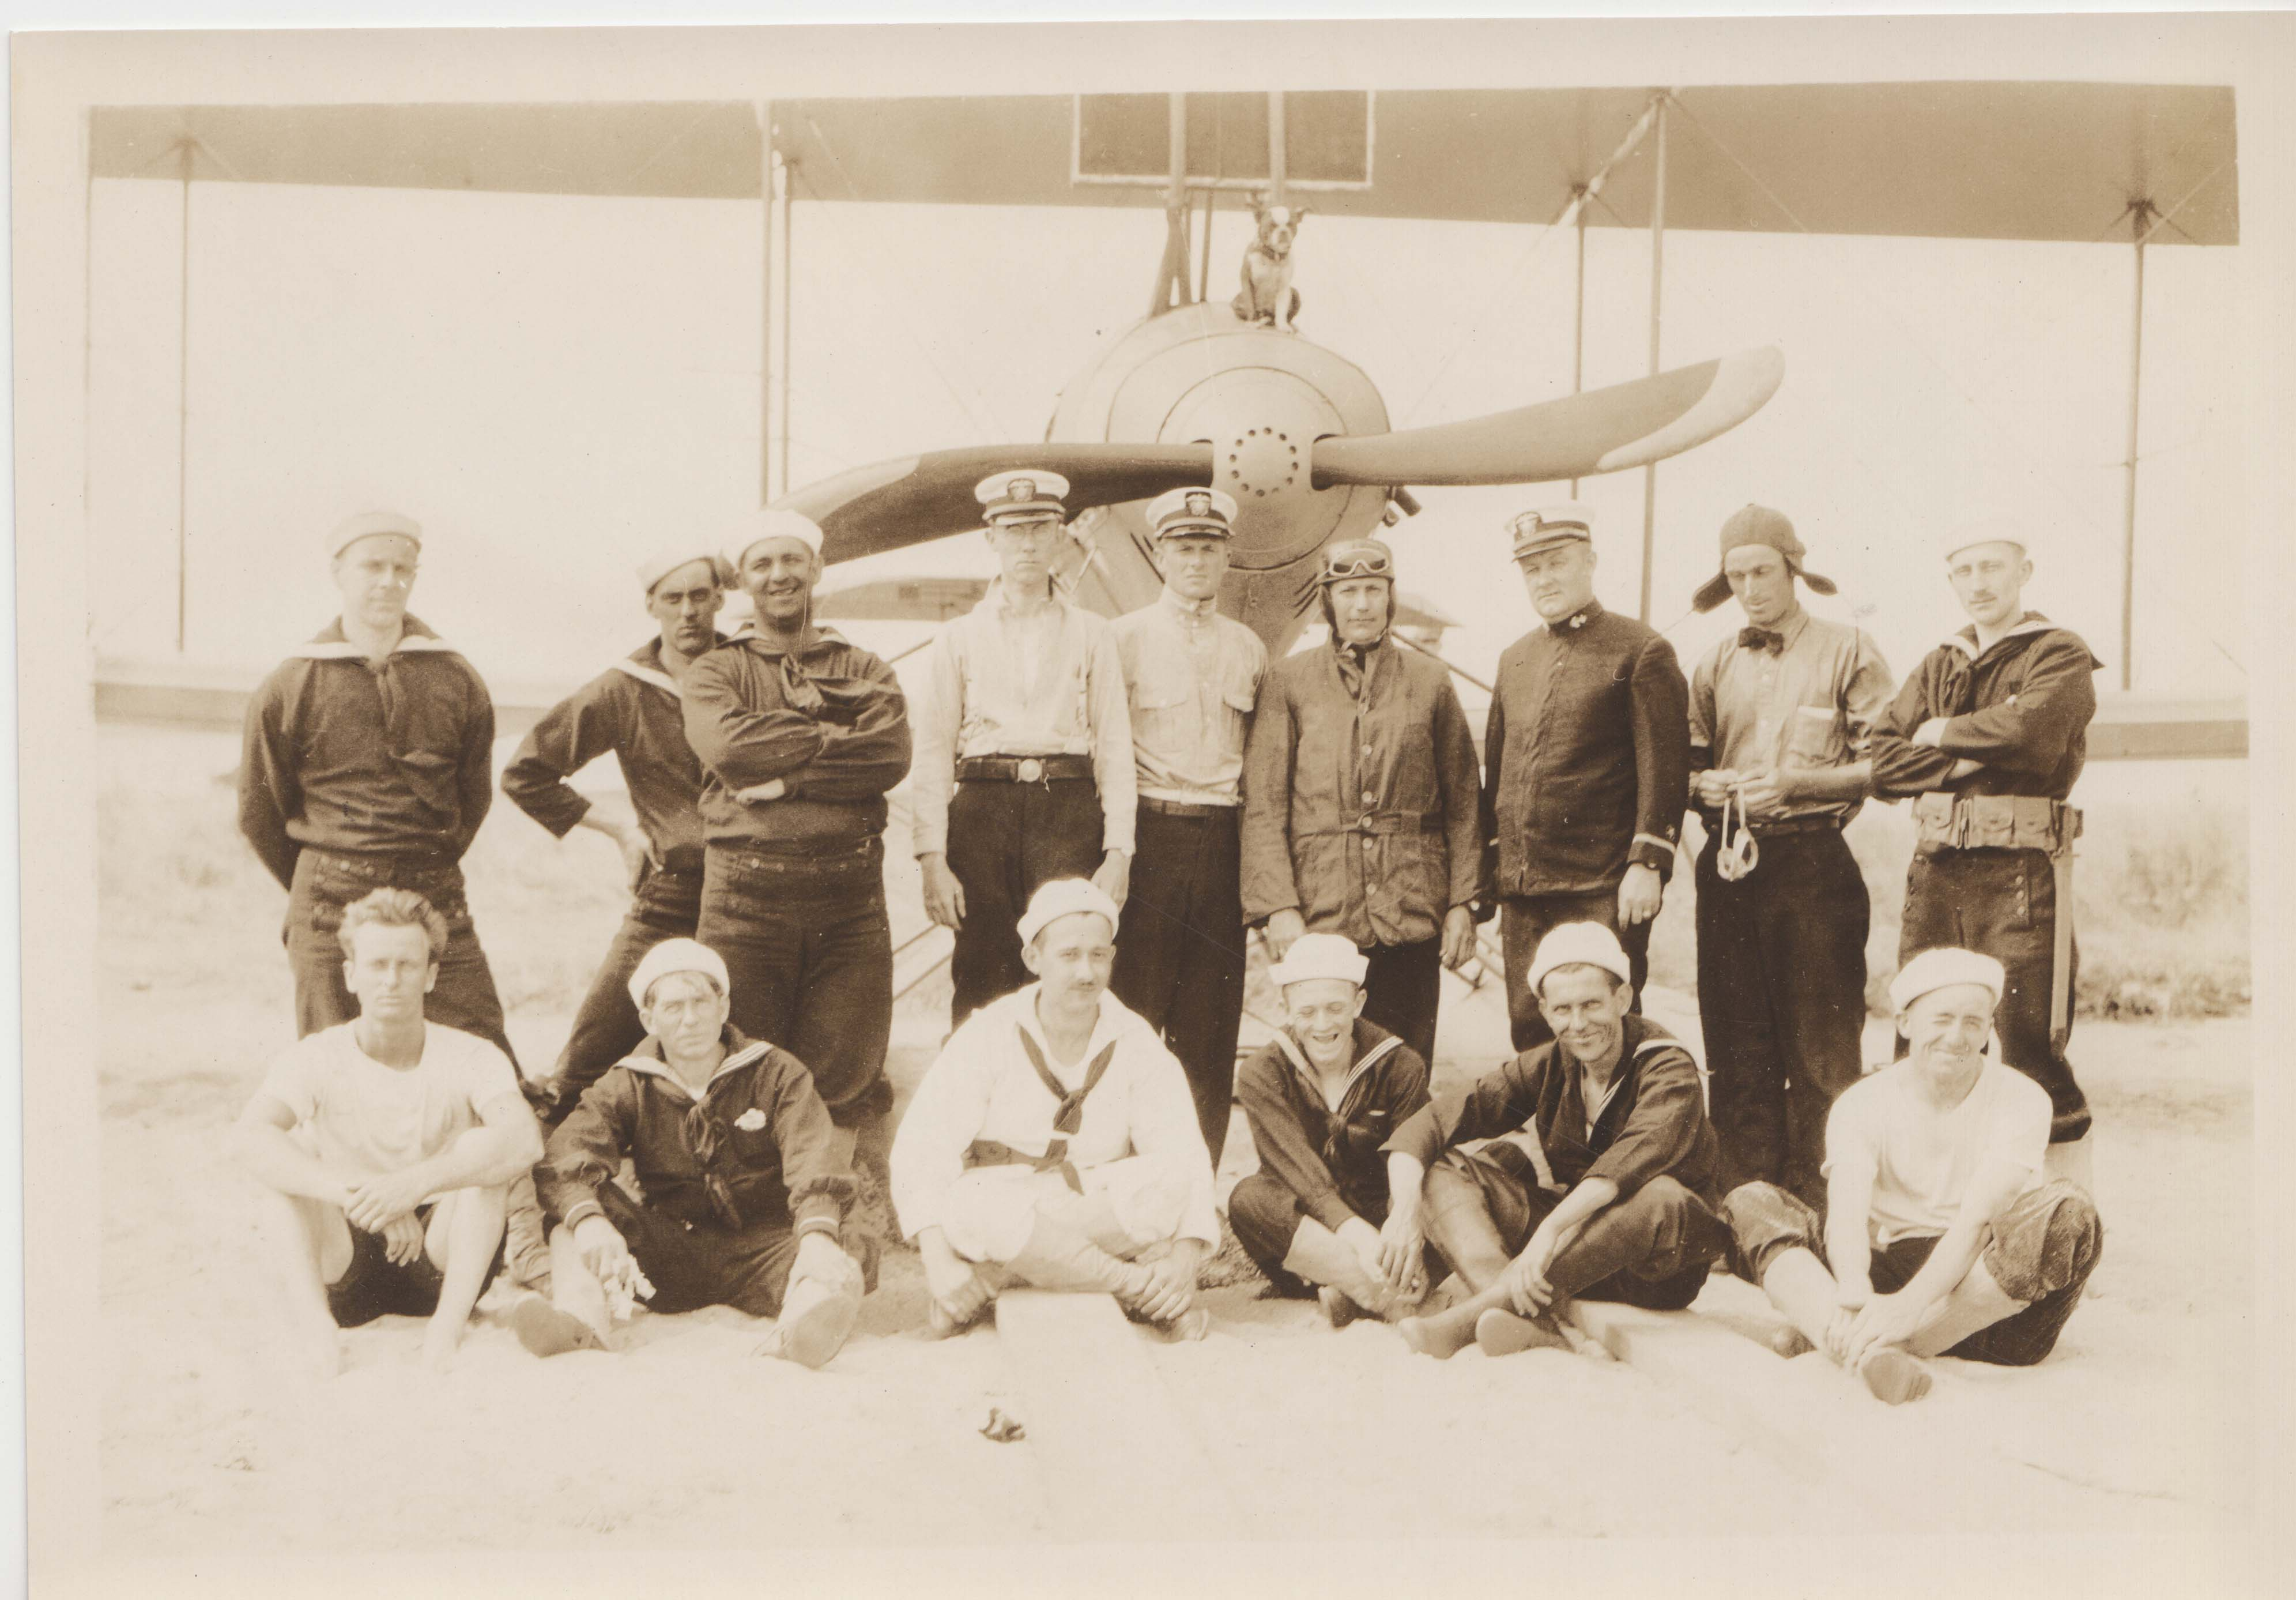 0116 Officers and Pilots in front of plane